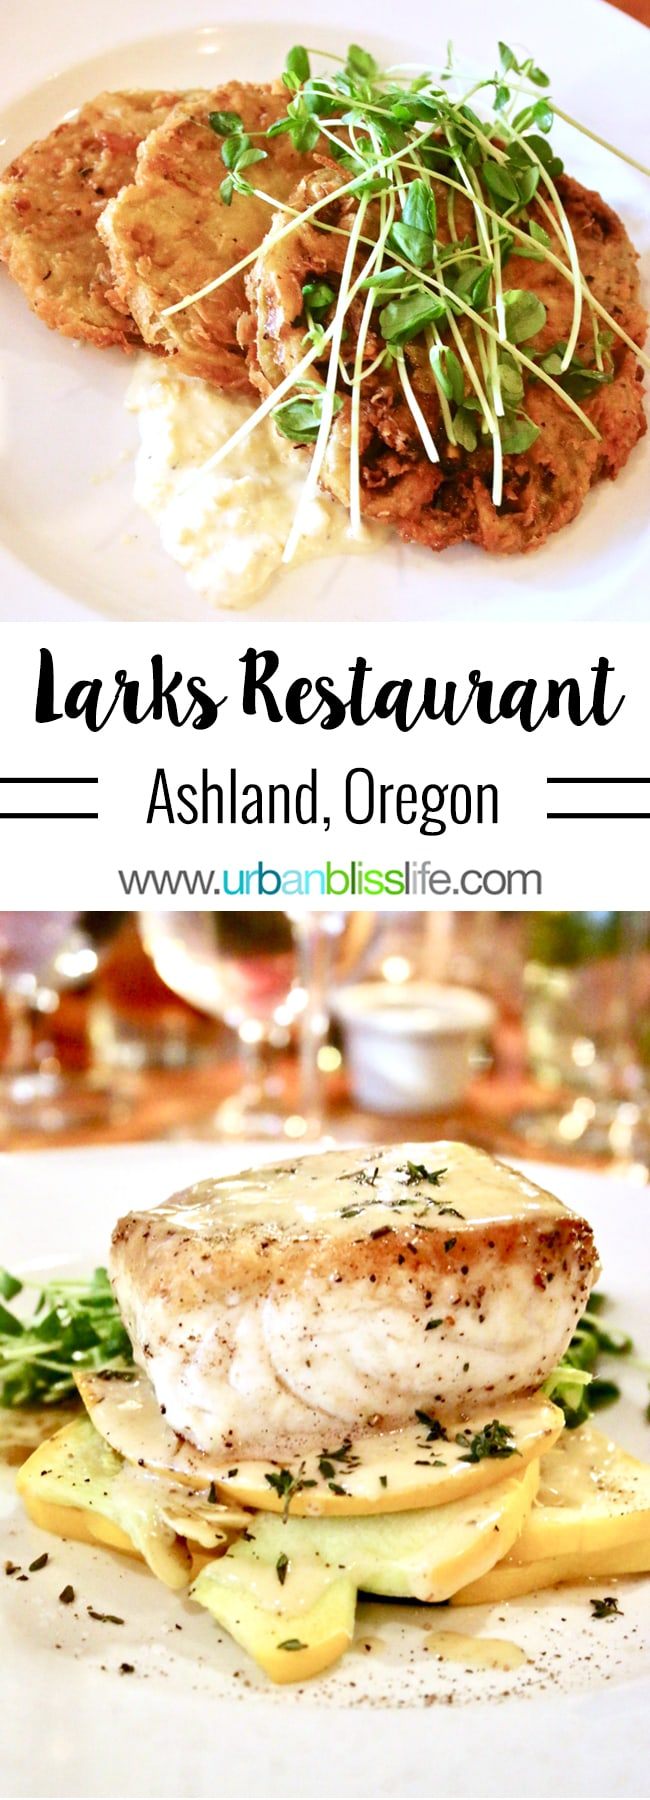 Larks Restaurant in Ashland, Oregon. Restaurant review on UrbanBlissLife.com